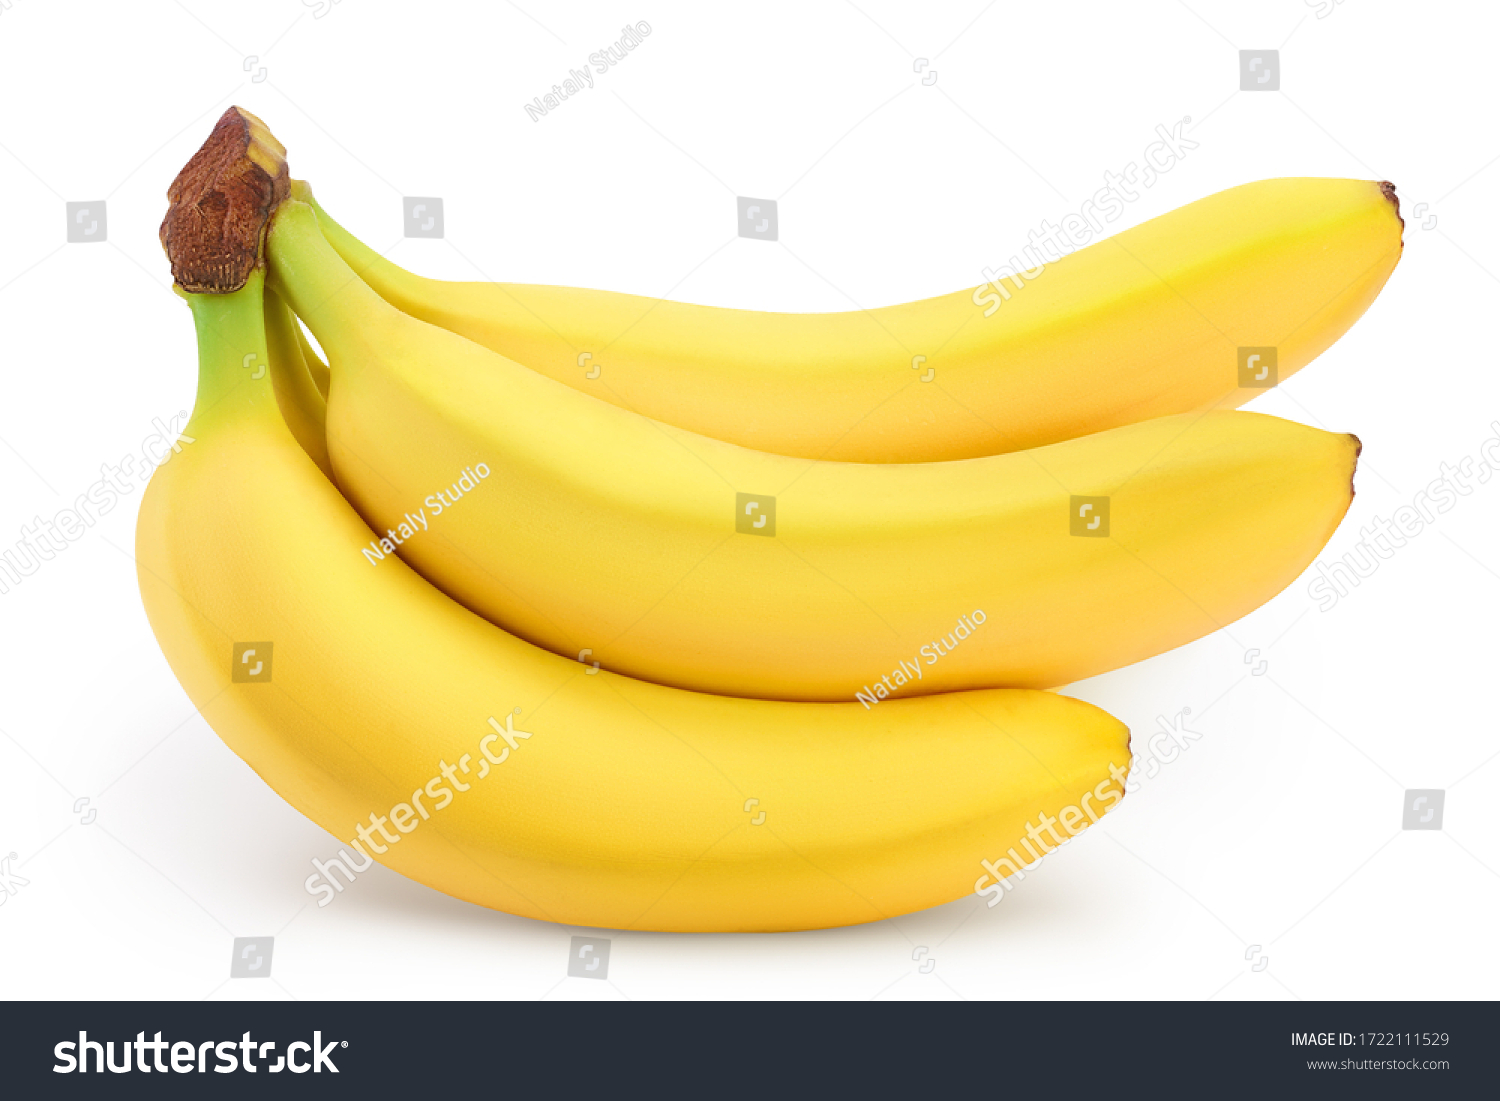 Bunch of bananas isolated on white background with clipping path and full depth of field. #1722111529